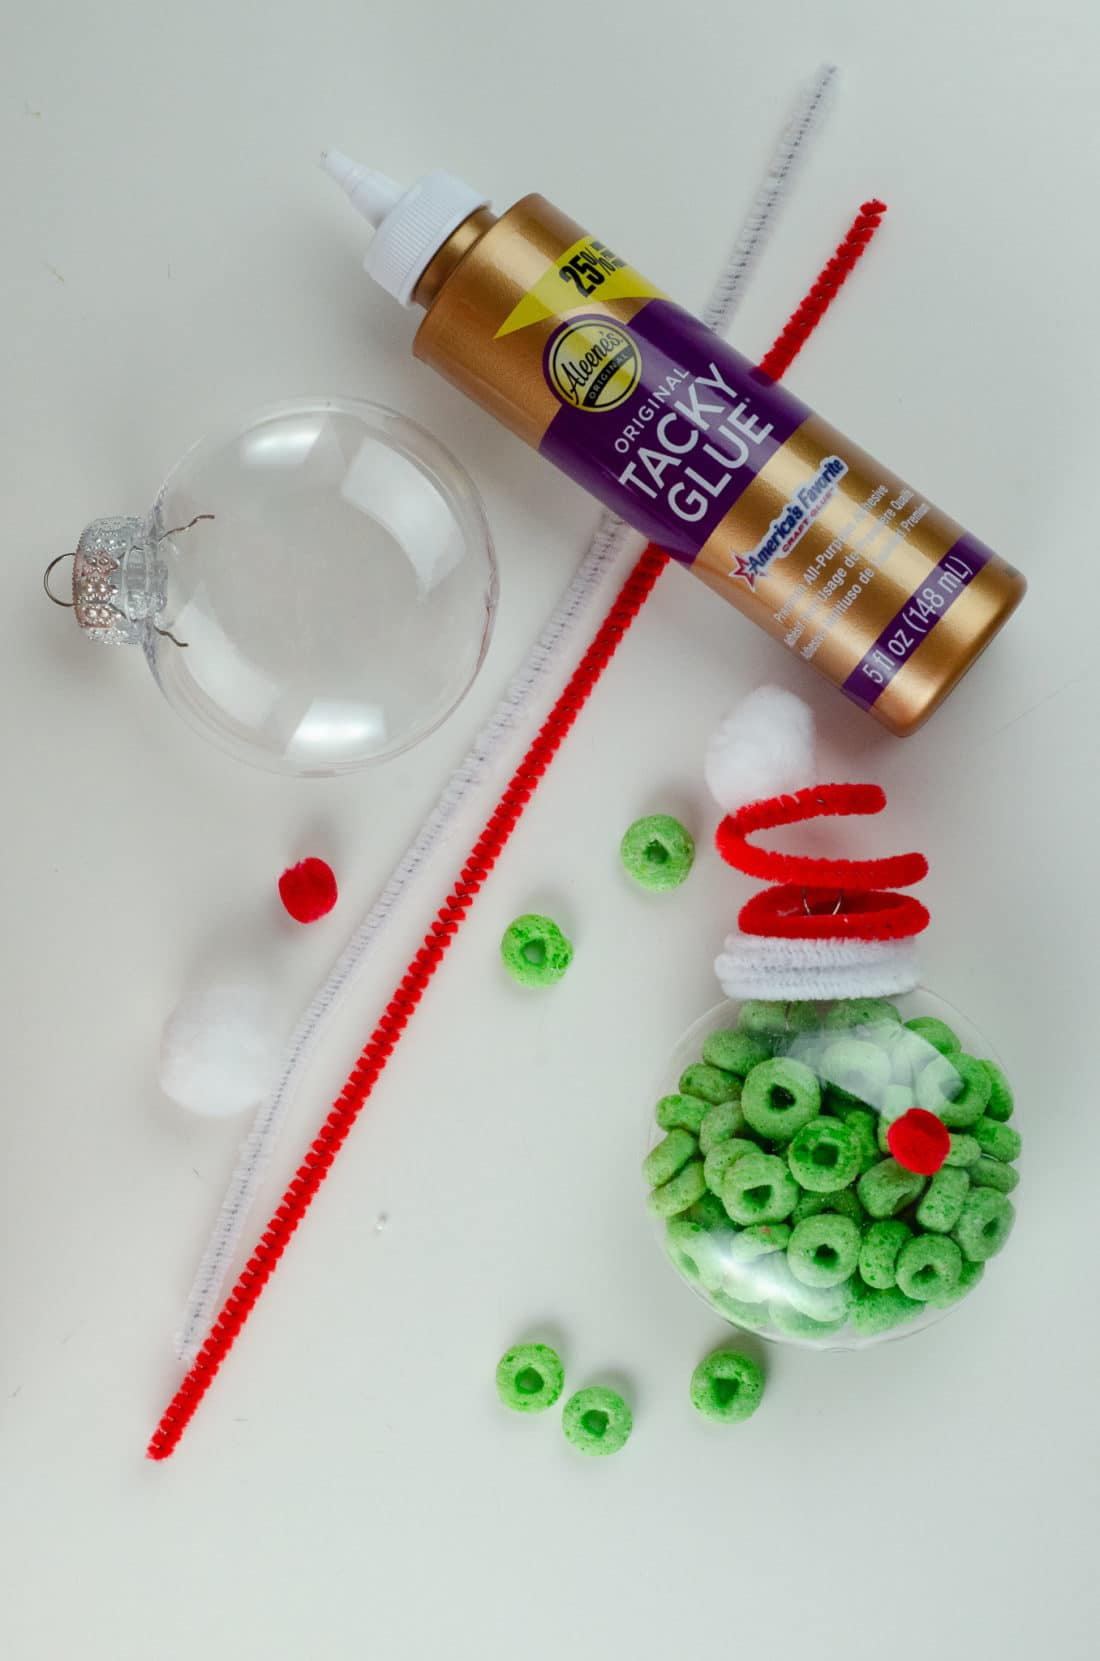 Christmas Ornament Ideas for Kids Using Cereal The Grinch Supplies. It's time to let the kids be the boss for this new kid-friendlyChristmas DIY. Rethink Cereal with somr my Christmas Ornament Ideas for Kids Using Cereal.